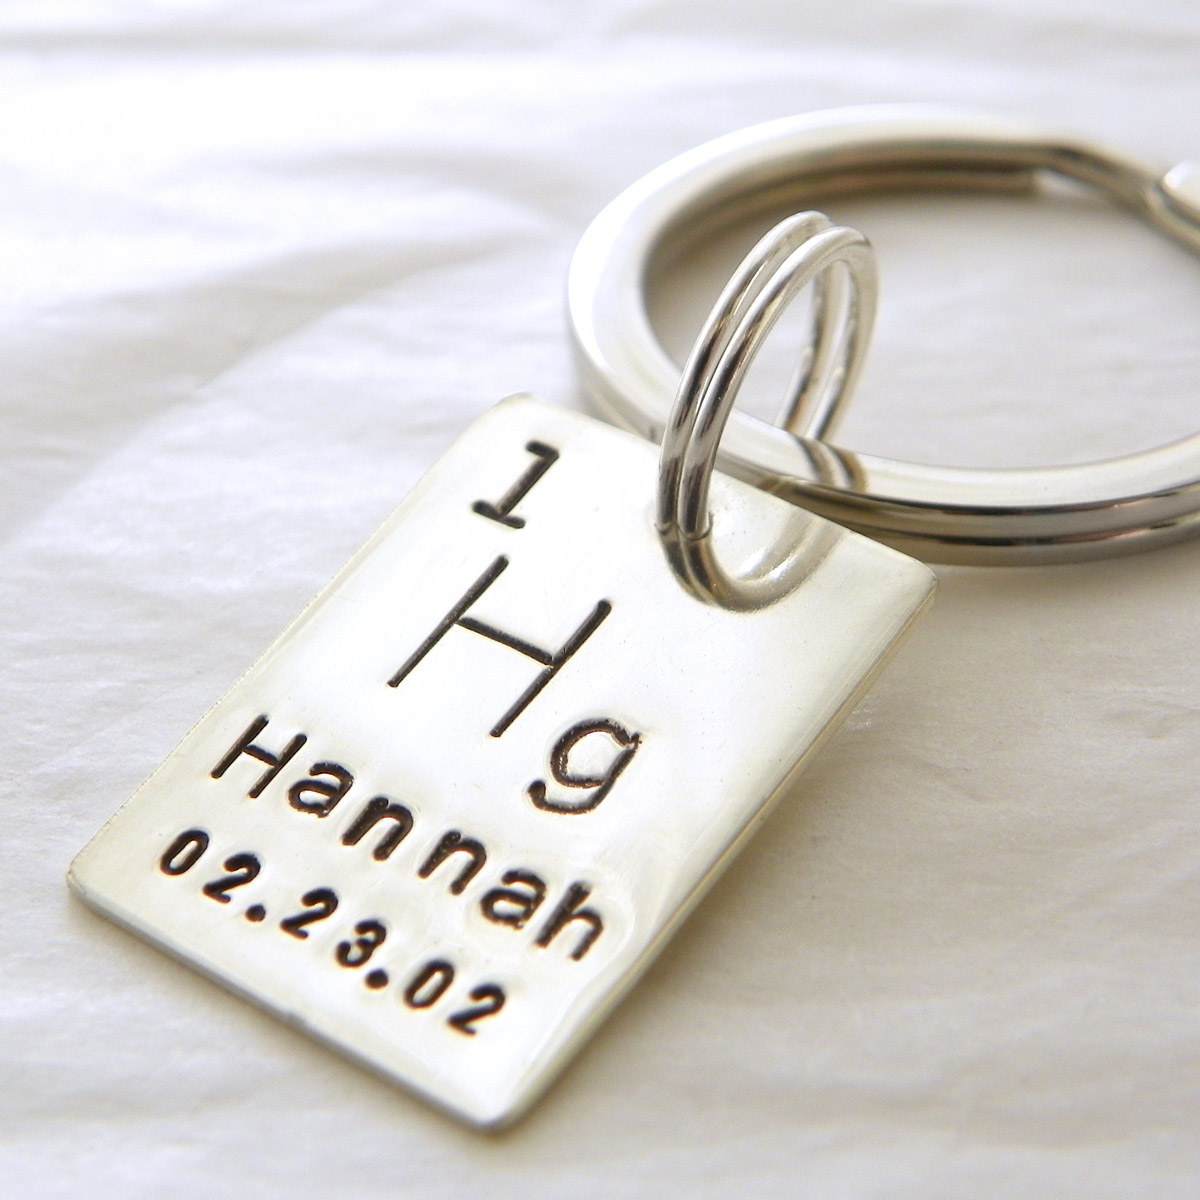 Personalized periodic table atomic element sterling silver key chain personalized periodic table atomic element hand stamped sterling silver key chain urtaz Gallery